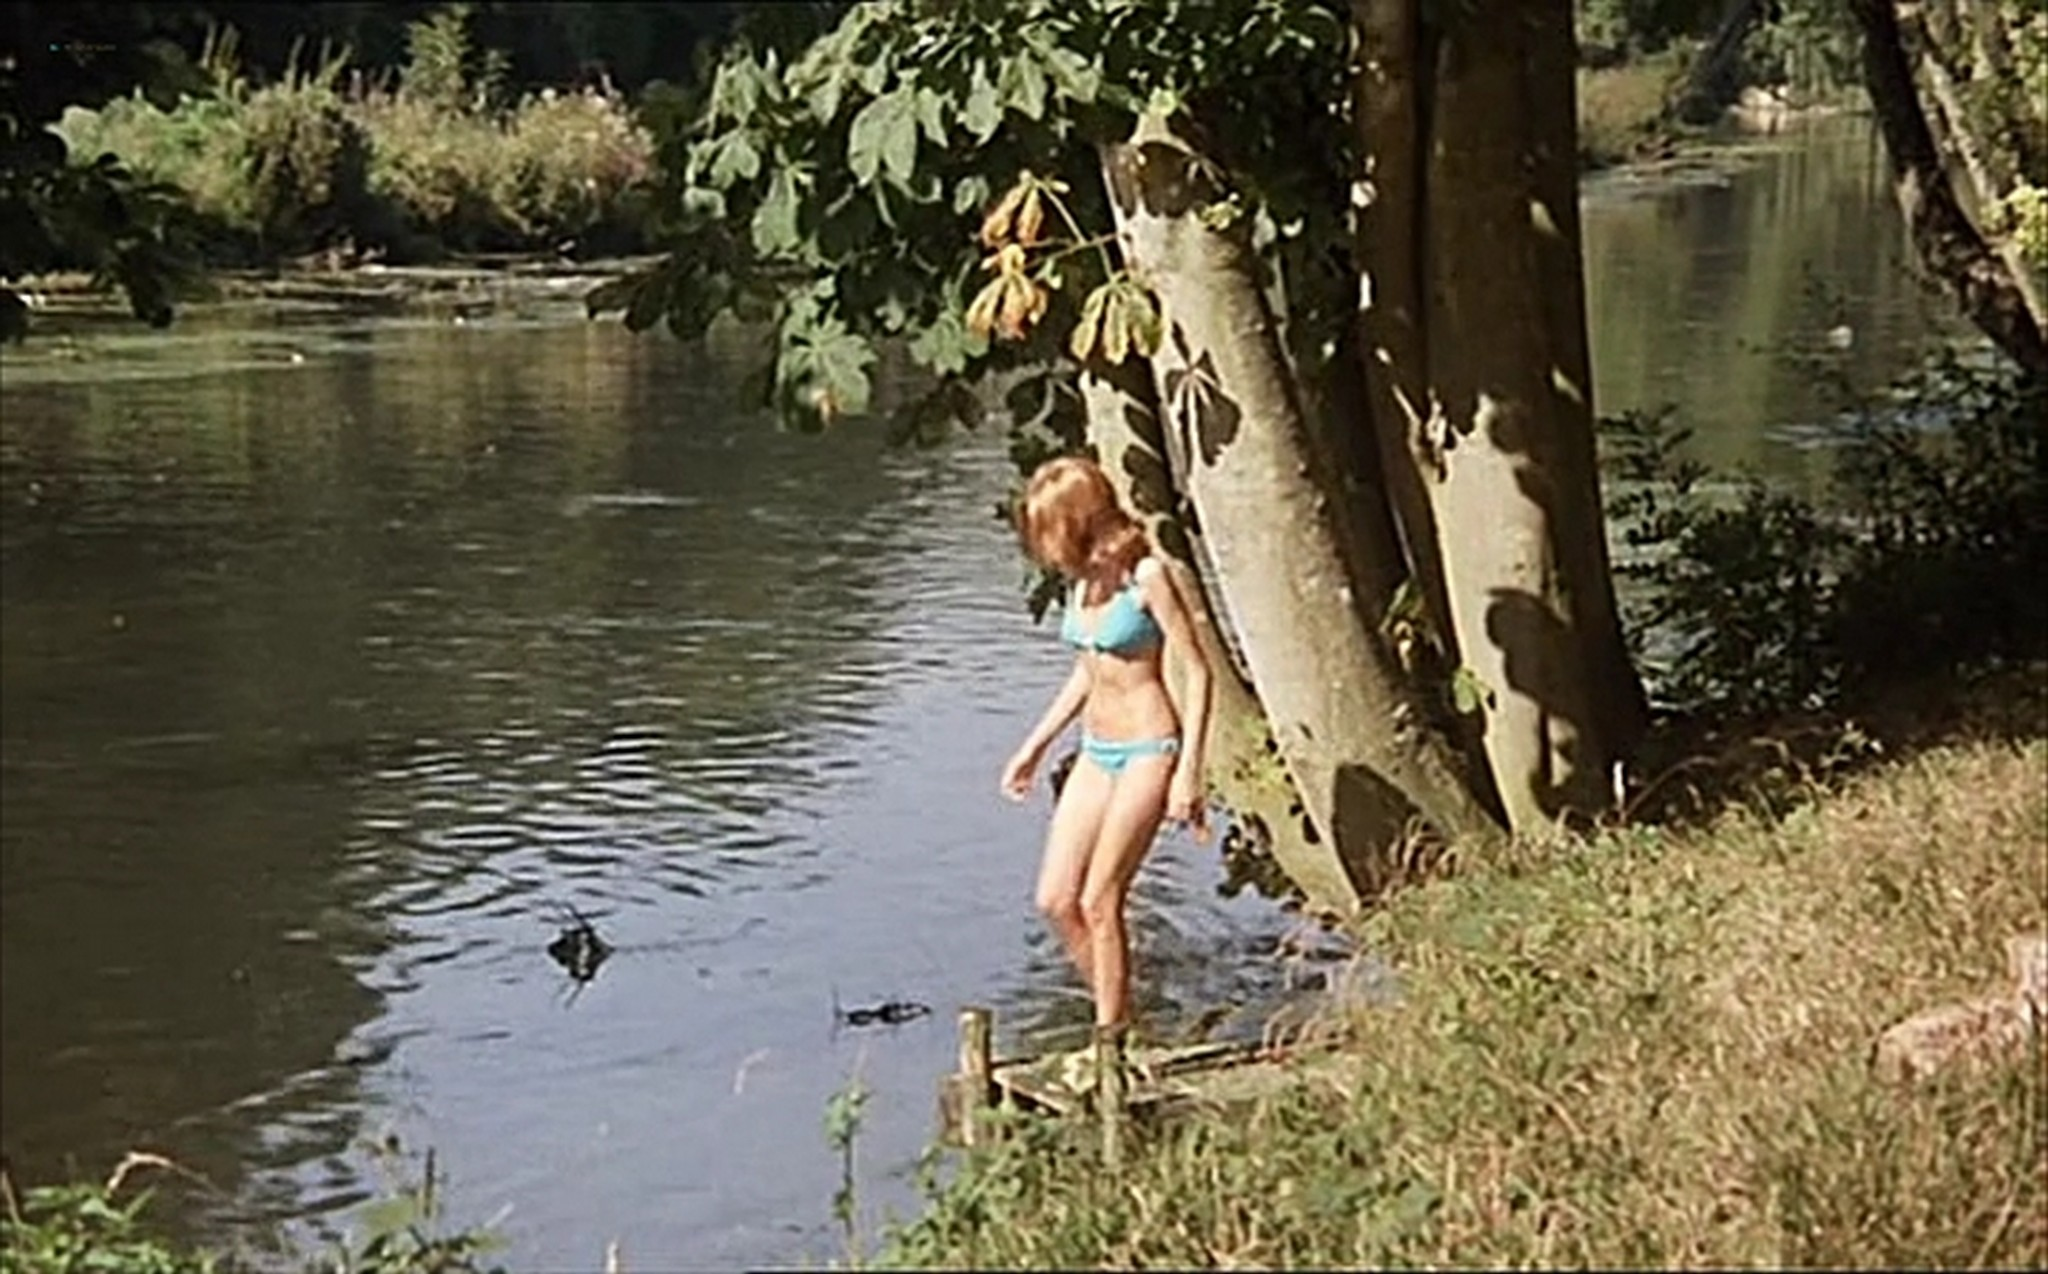 Muriel Catala nude topless and butt and Claire Vernet nude skinny dipping Faustine et le bel ete 1972 8